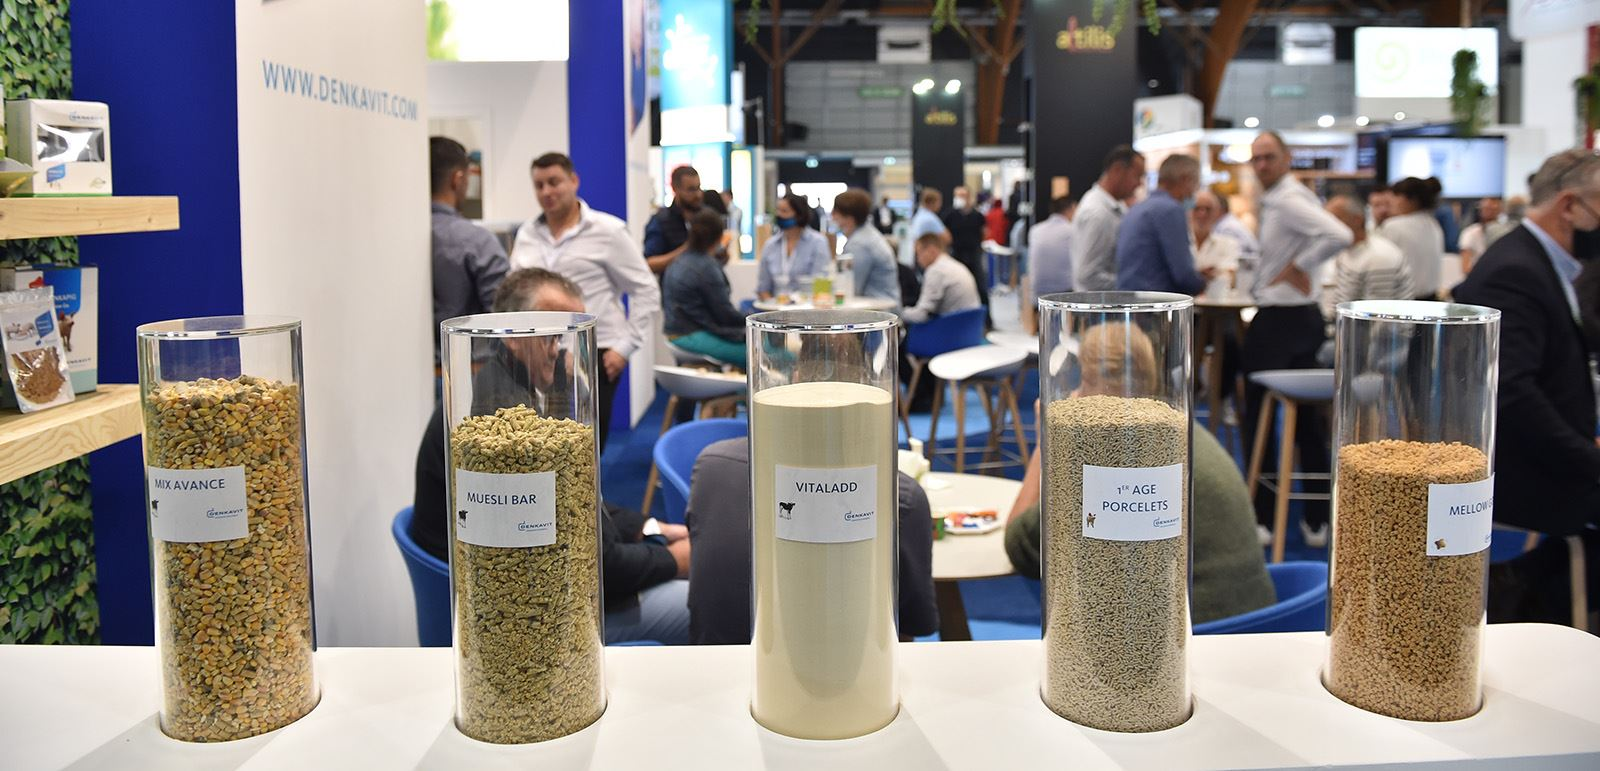 1.400 exhibitors from 42 countries